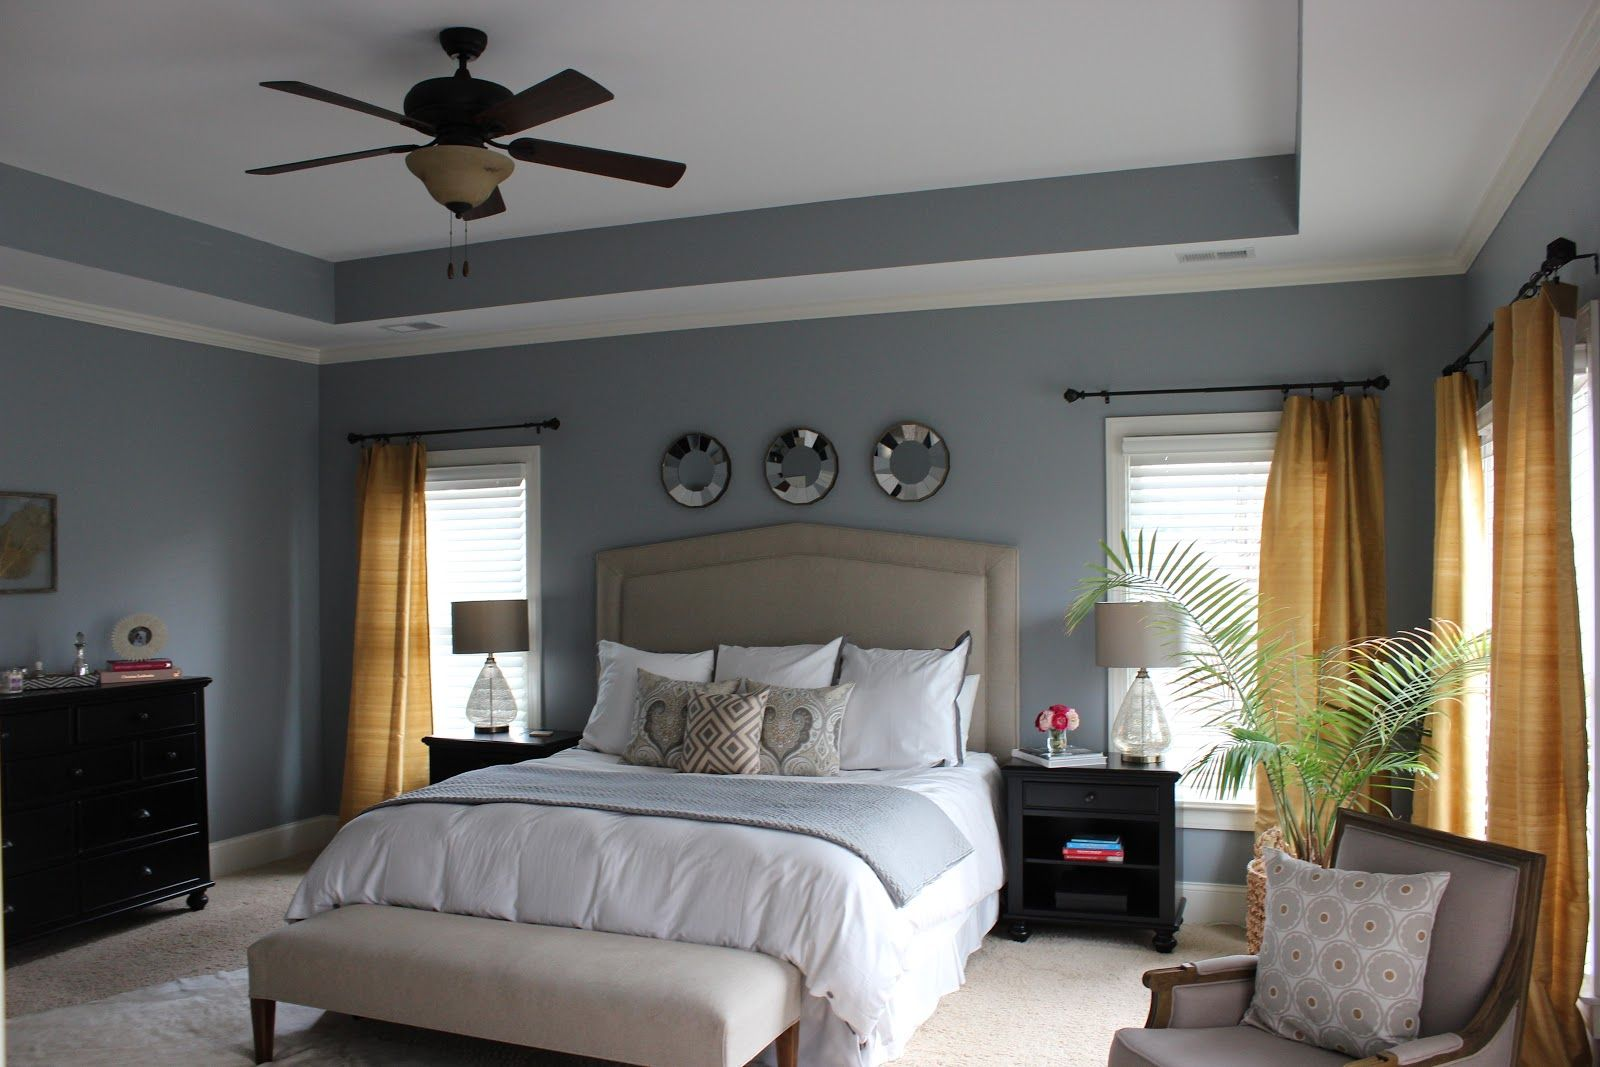 Benjamin Moore Gull Wing Grey Walls Great Master Bedroom Color Decor Ideas Pinterest Gull